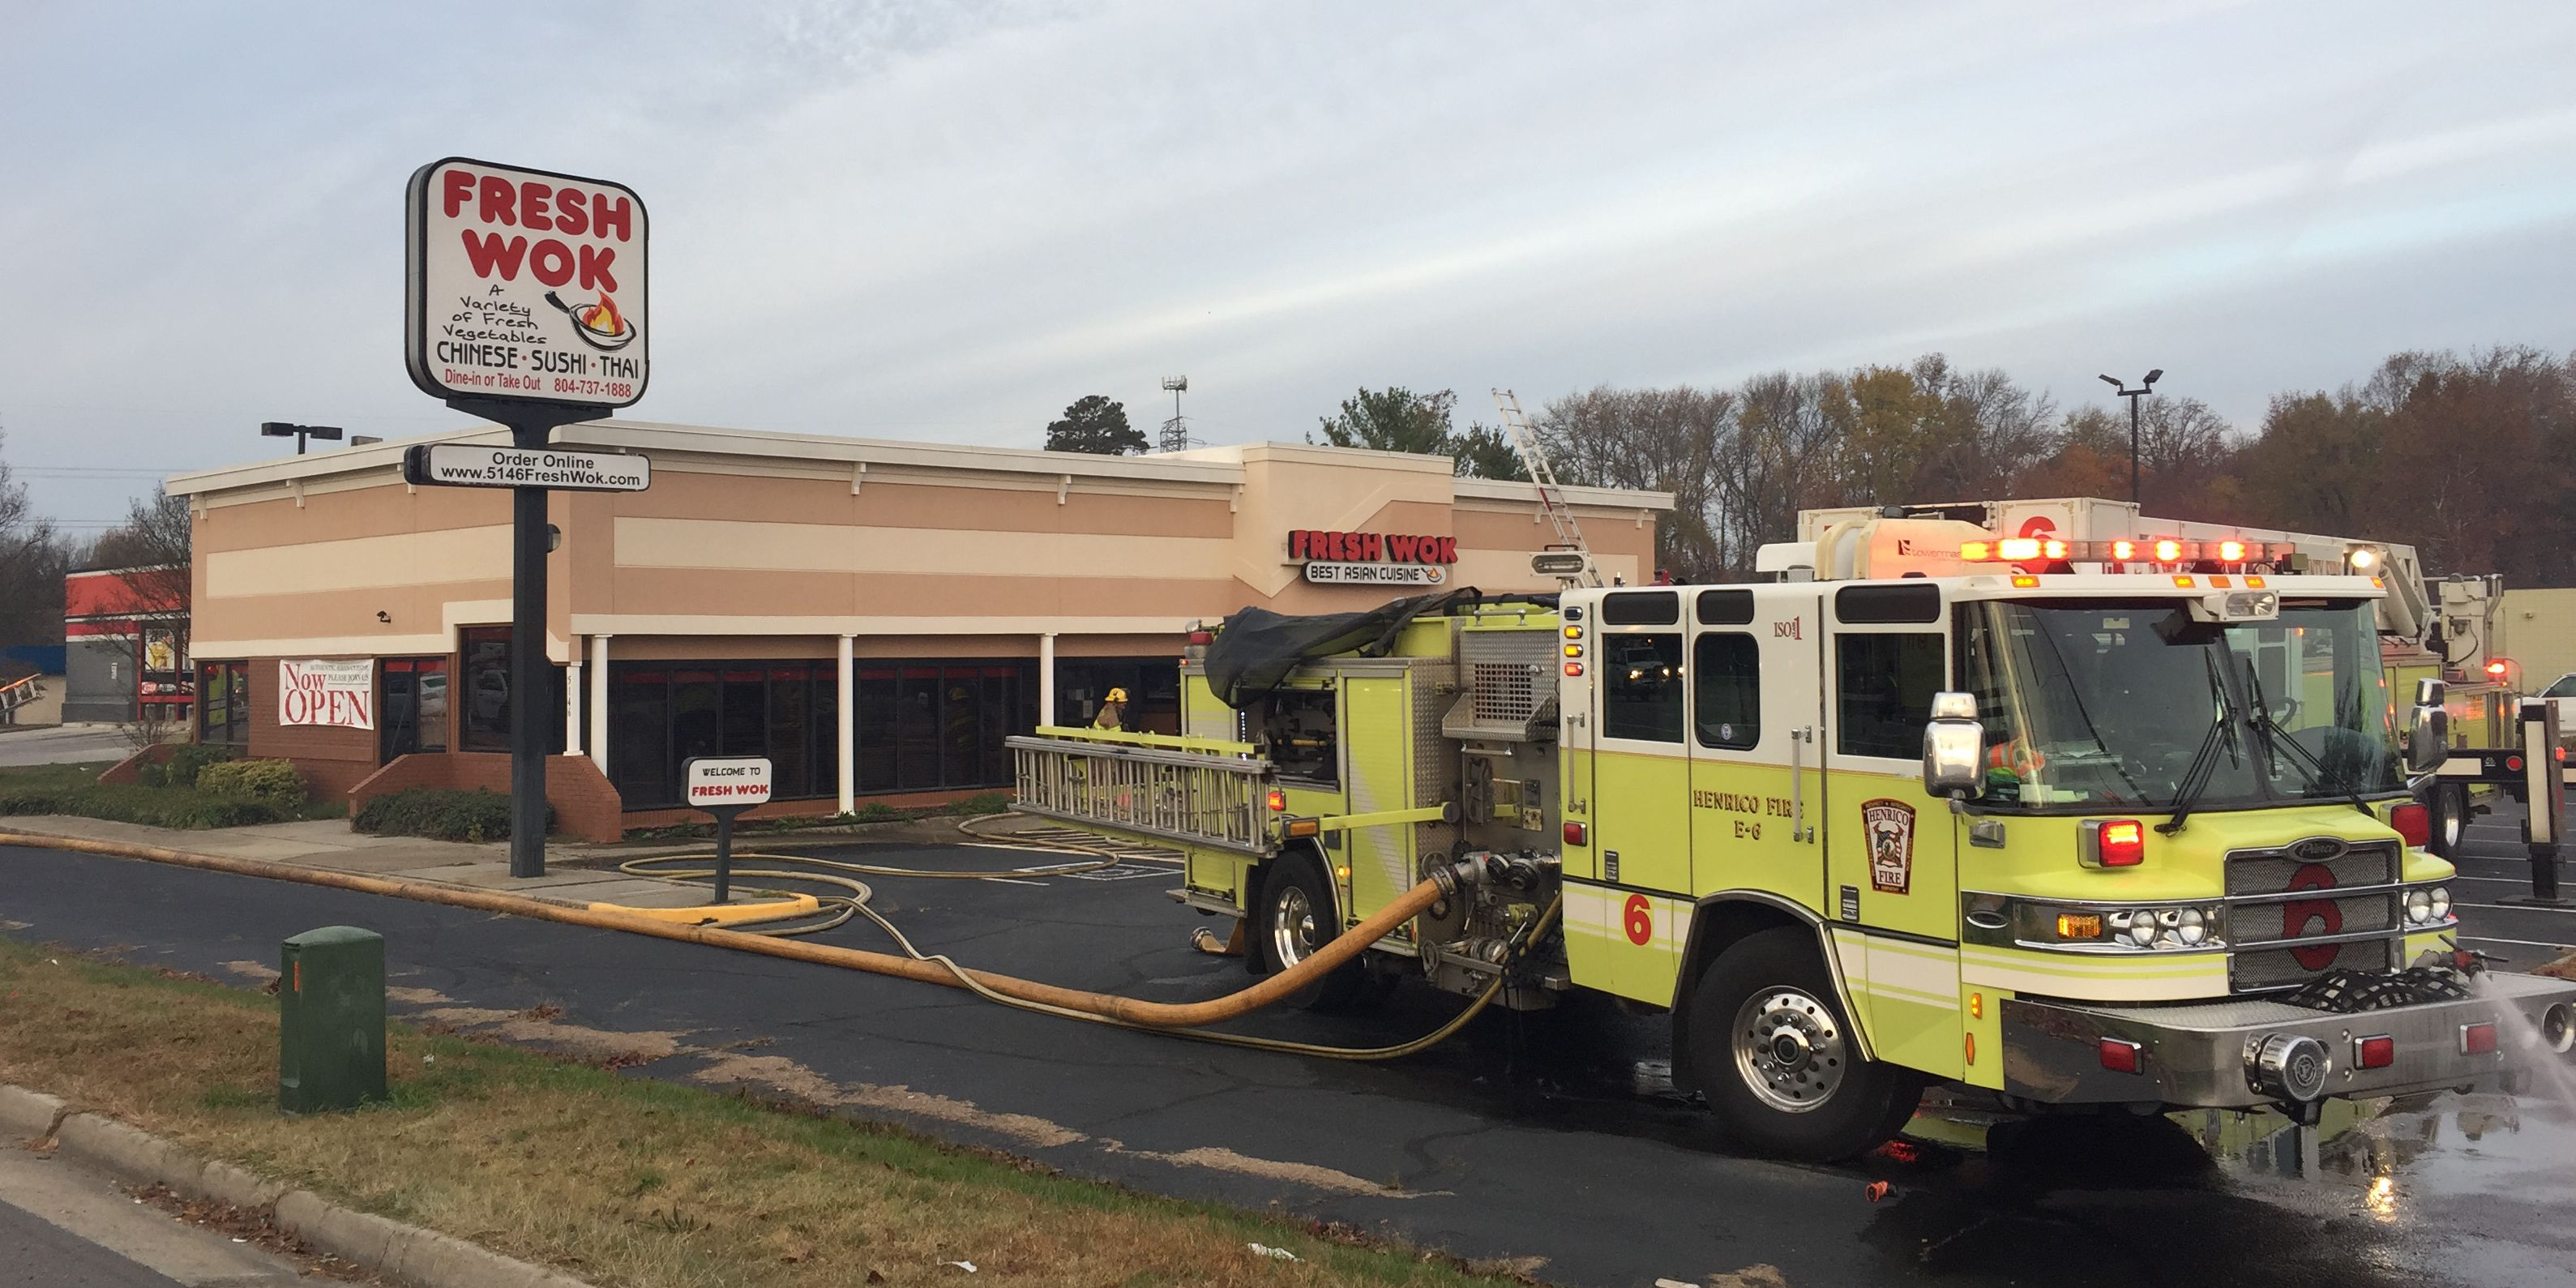 No one injured in early morning Henrico restaurant fire